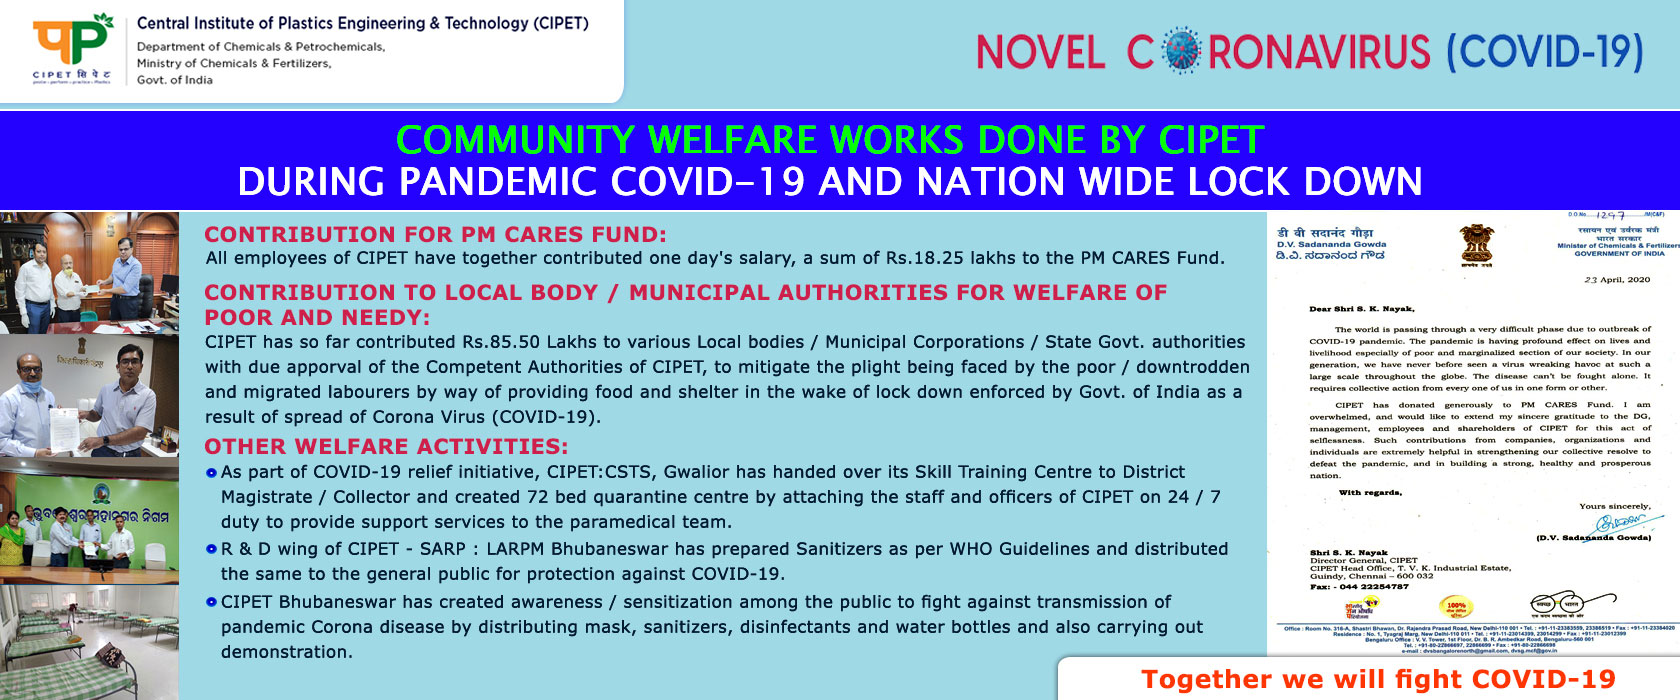 COMMUNITY WELFARE WORKS DONE BY CIPET DURING PANDEMIC COVID-19 AND NATION WIDE LOCK DOWN